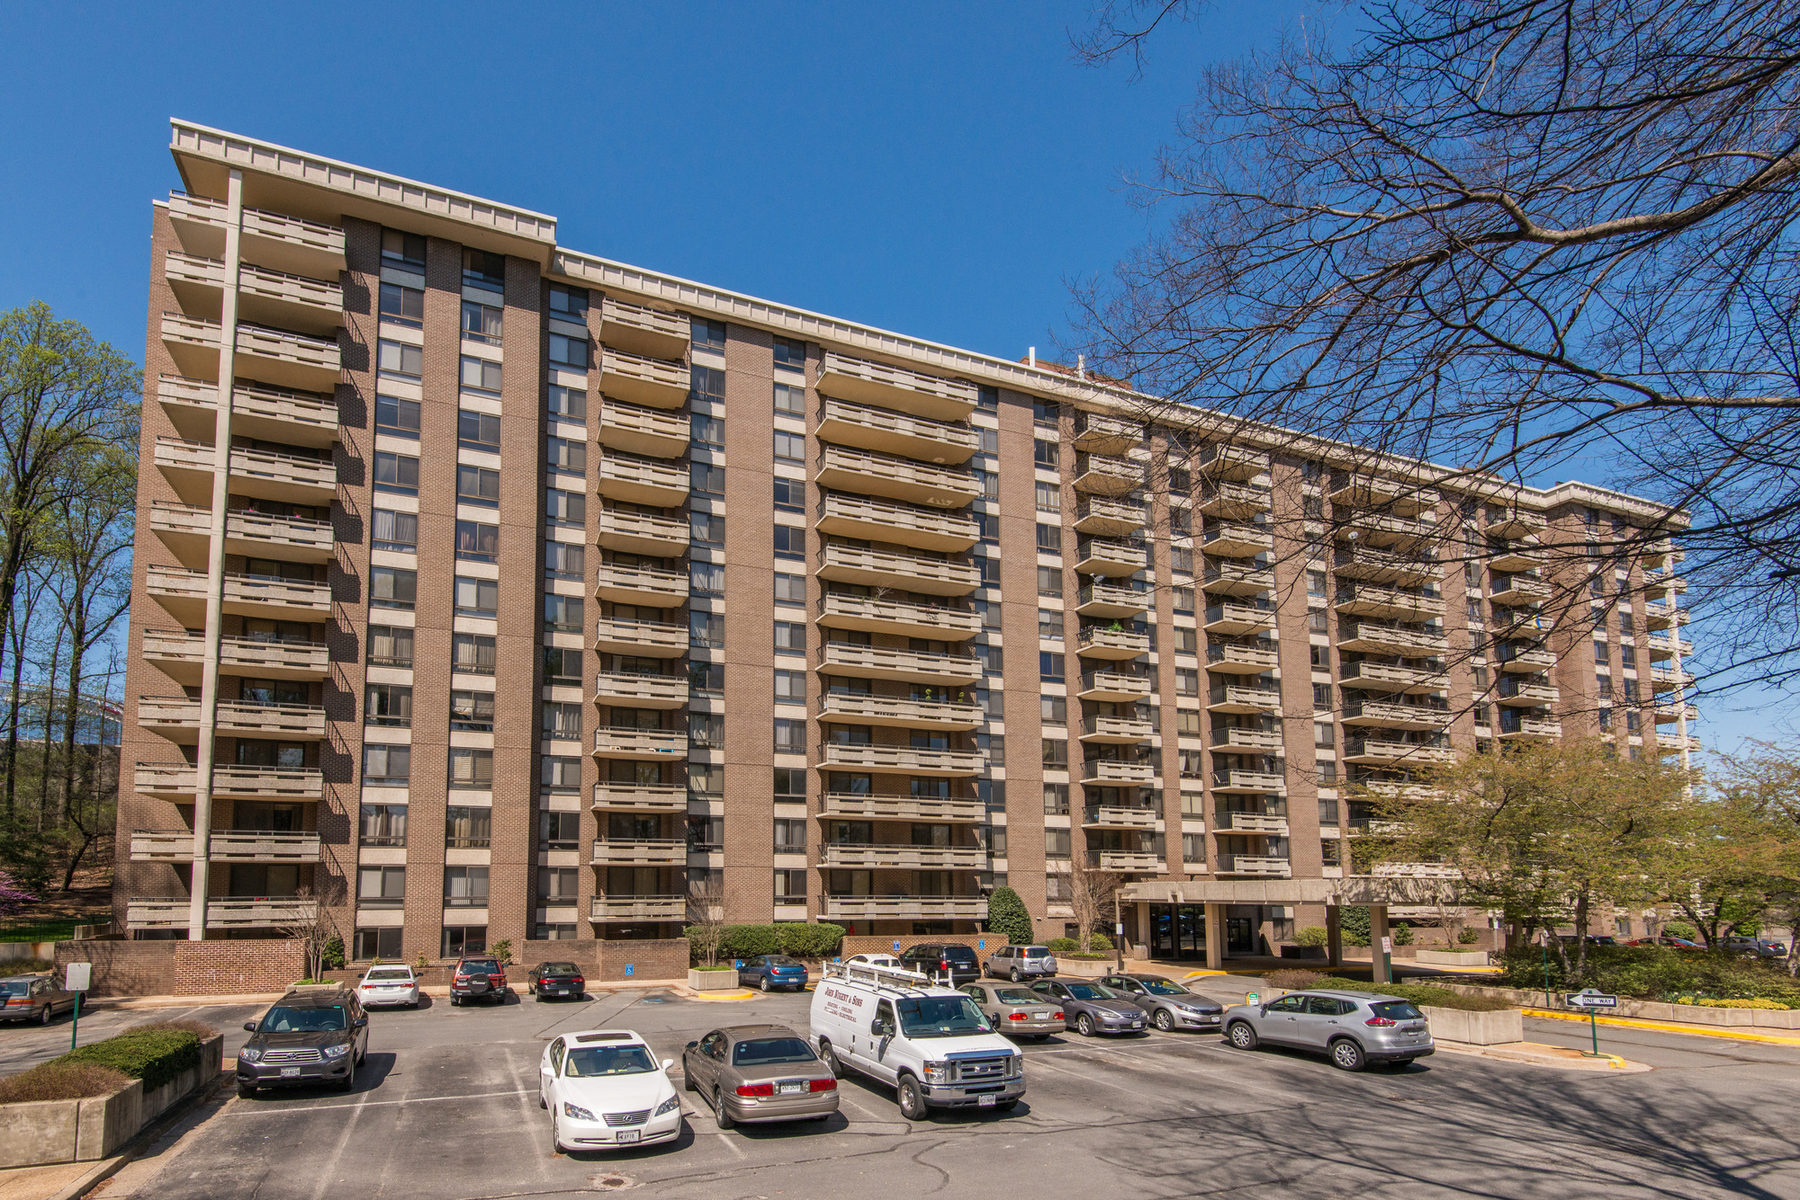 Condominium for Sale at 1808 Old Meadow Road 1407, Mclean 1808 Old Meadow Rd 1407 McLean, Virginia, 22102 United States